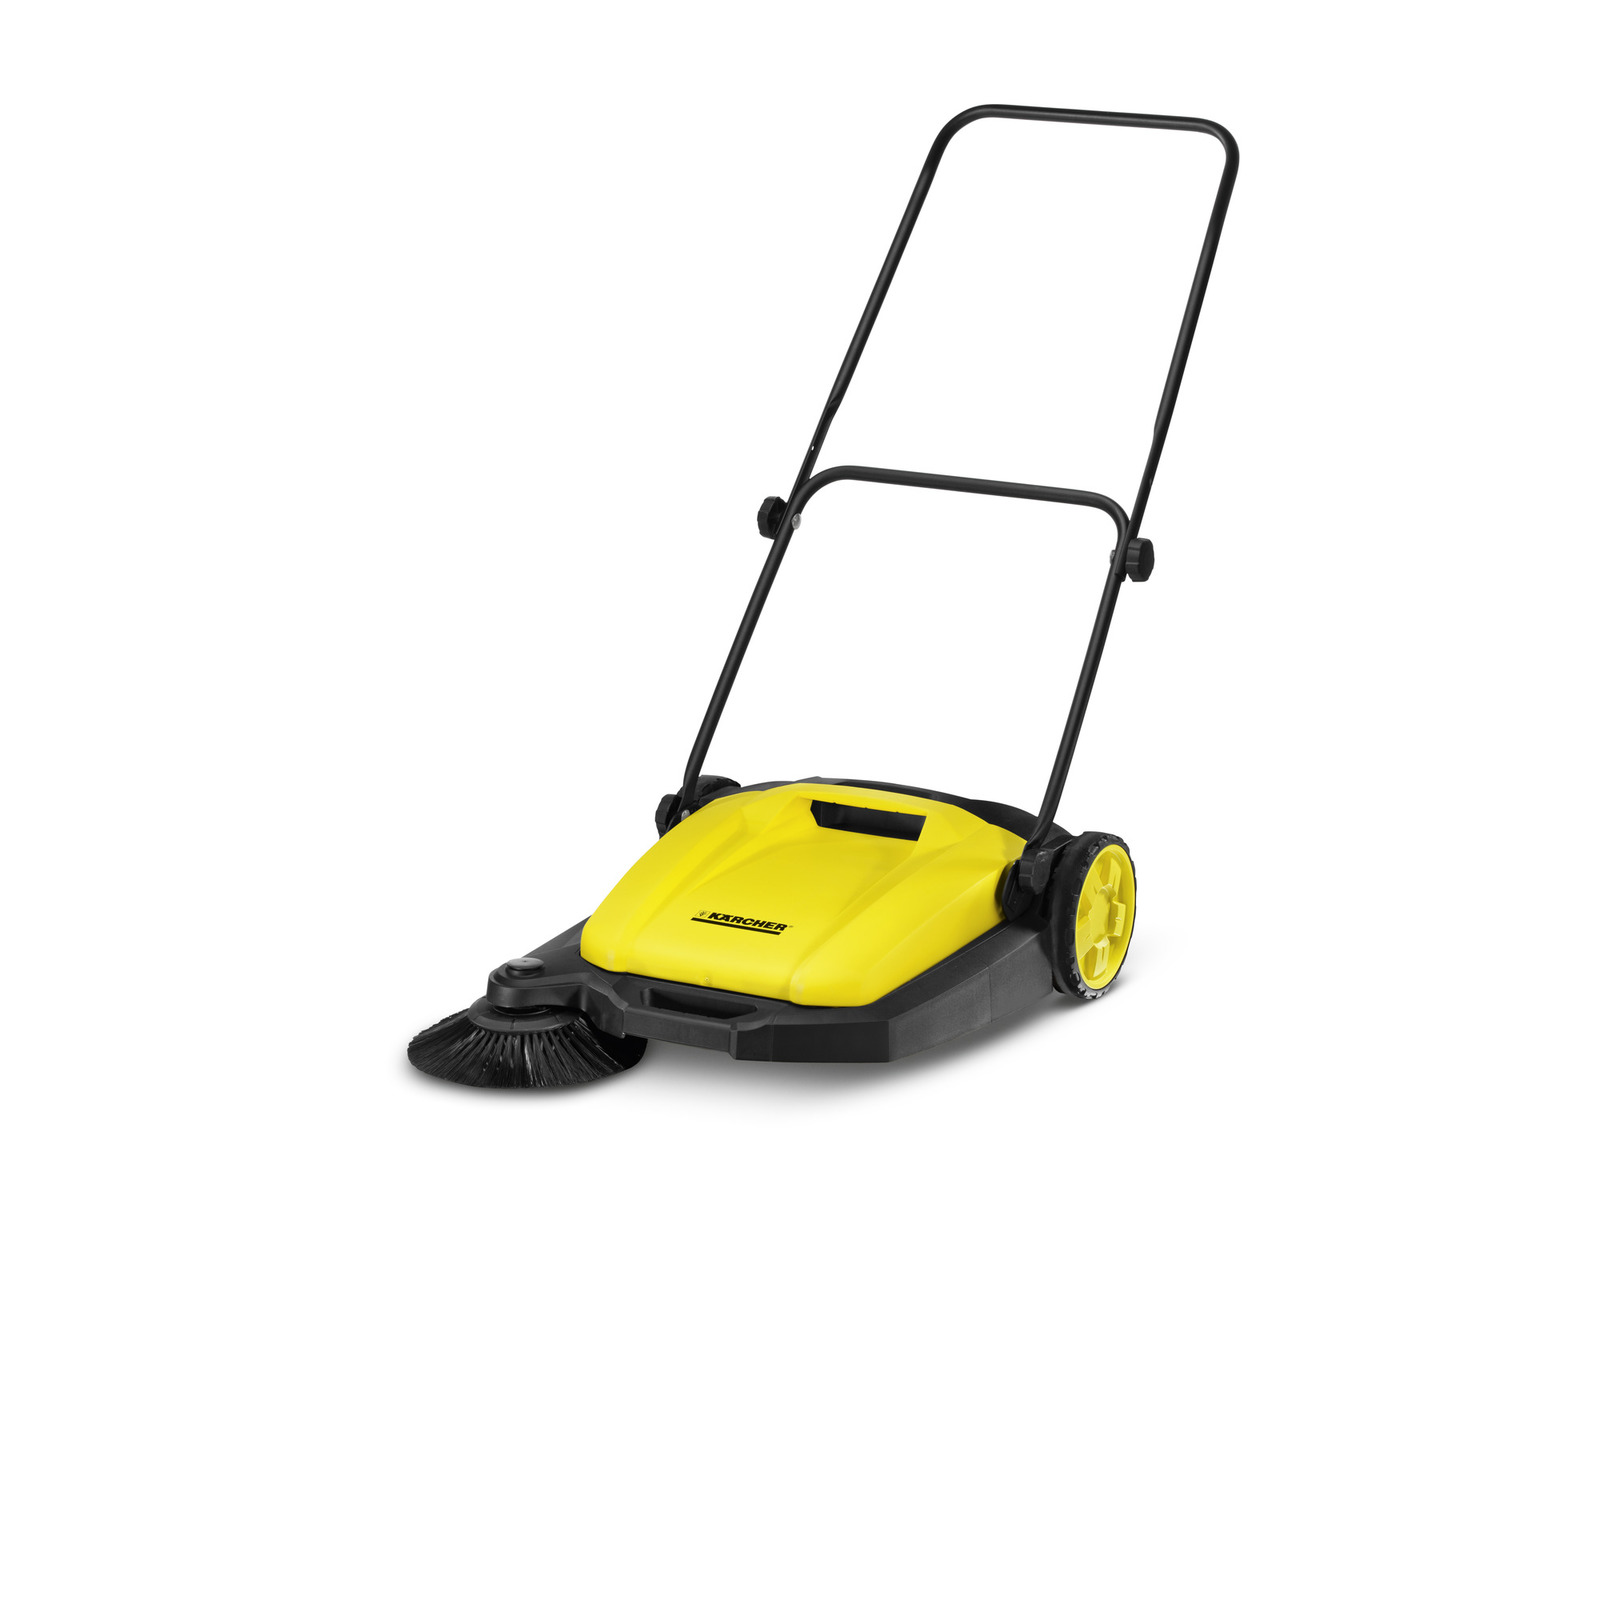 KARCHER 1.766-200.0 - S 550 Push Sweeper